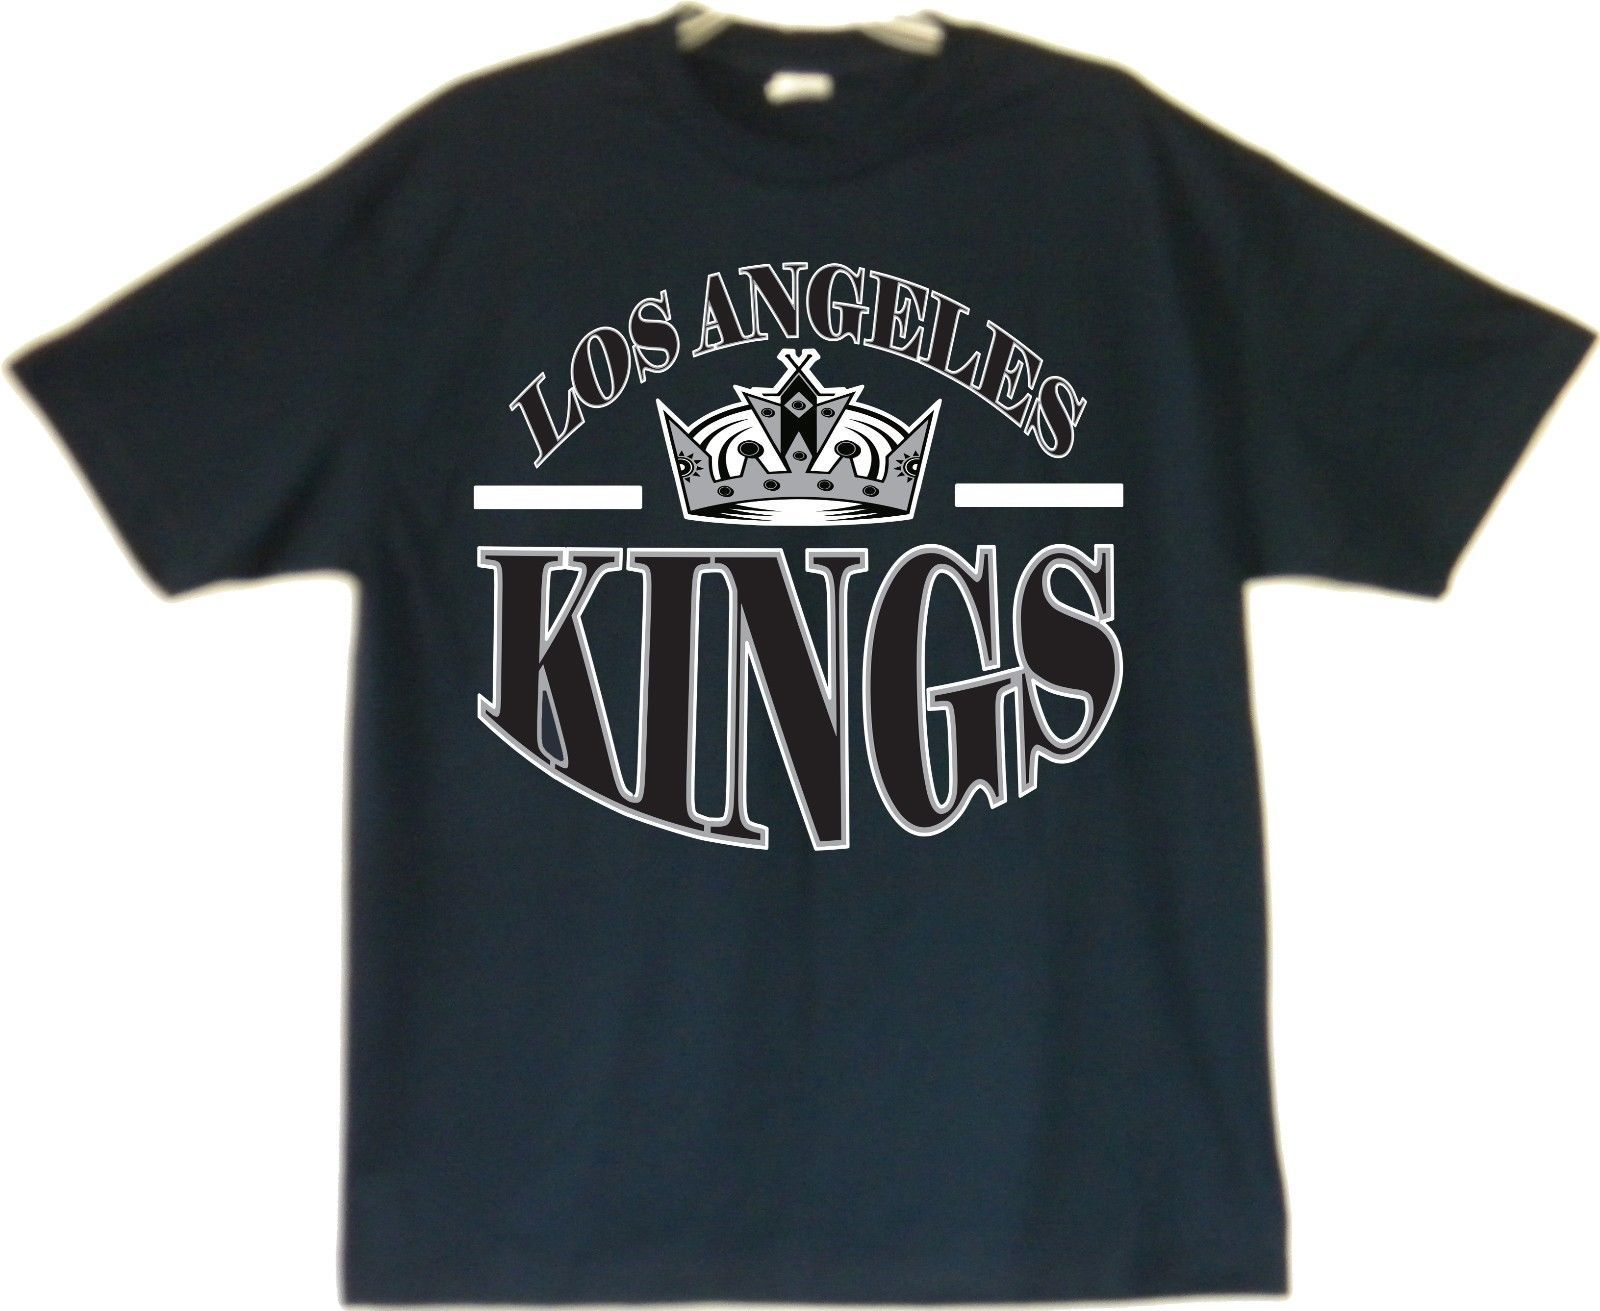 Primary image for Los Angeles Kings Men's T-Shirt Black (S / M / L / XL) 2XL / 3XL